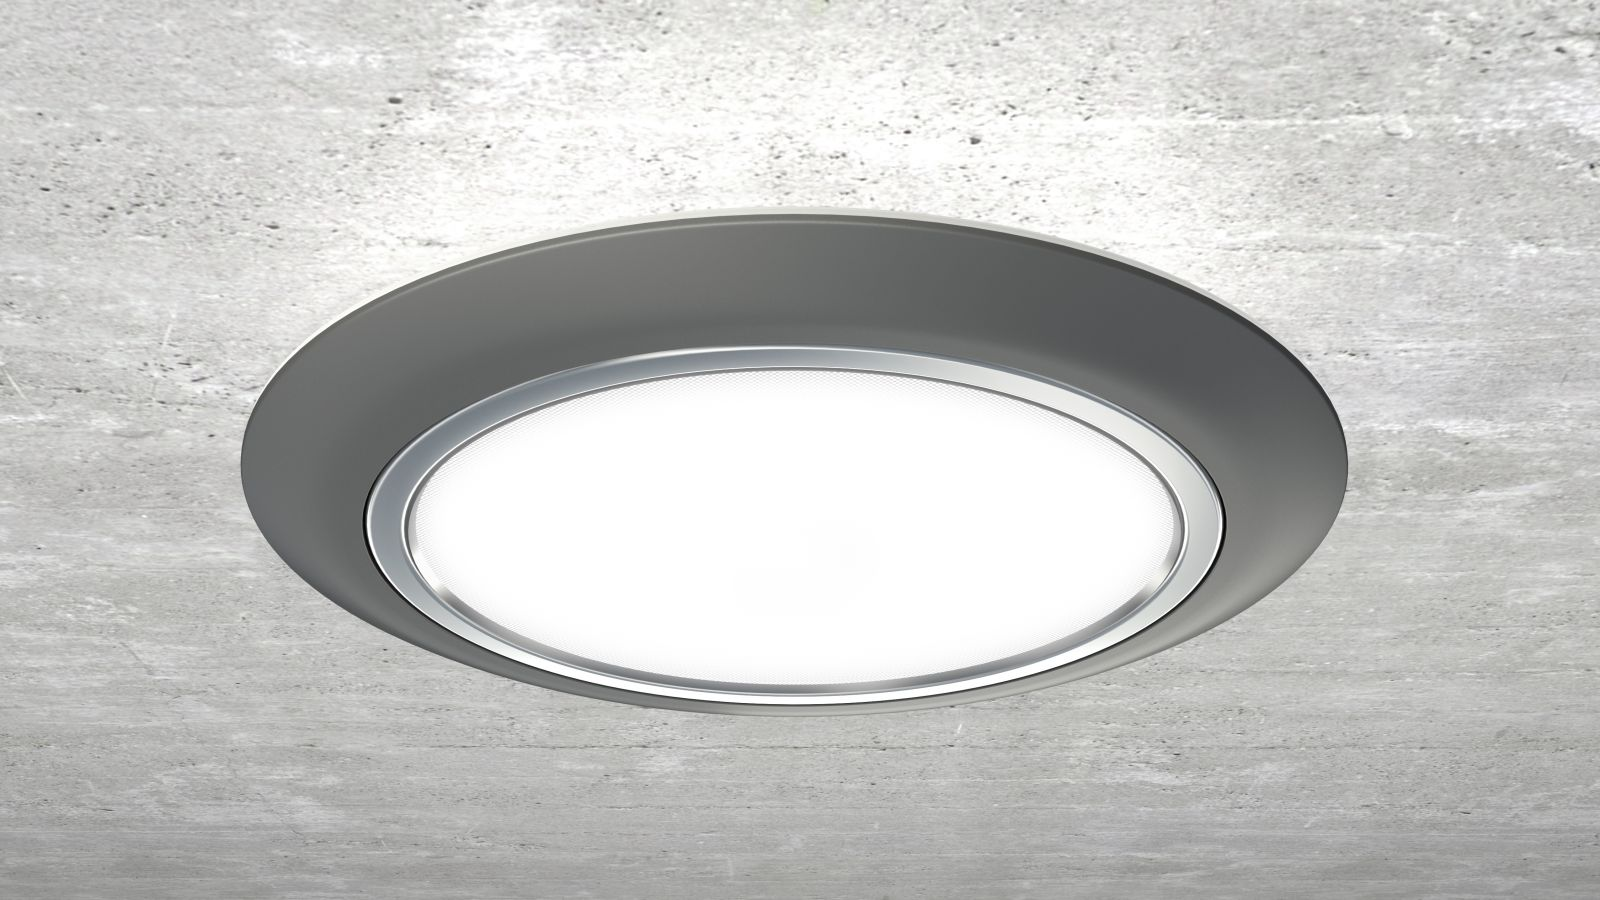 Philips Gardco SoftView LED parking garage luminaires